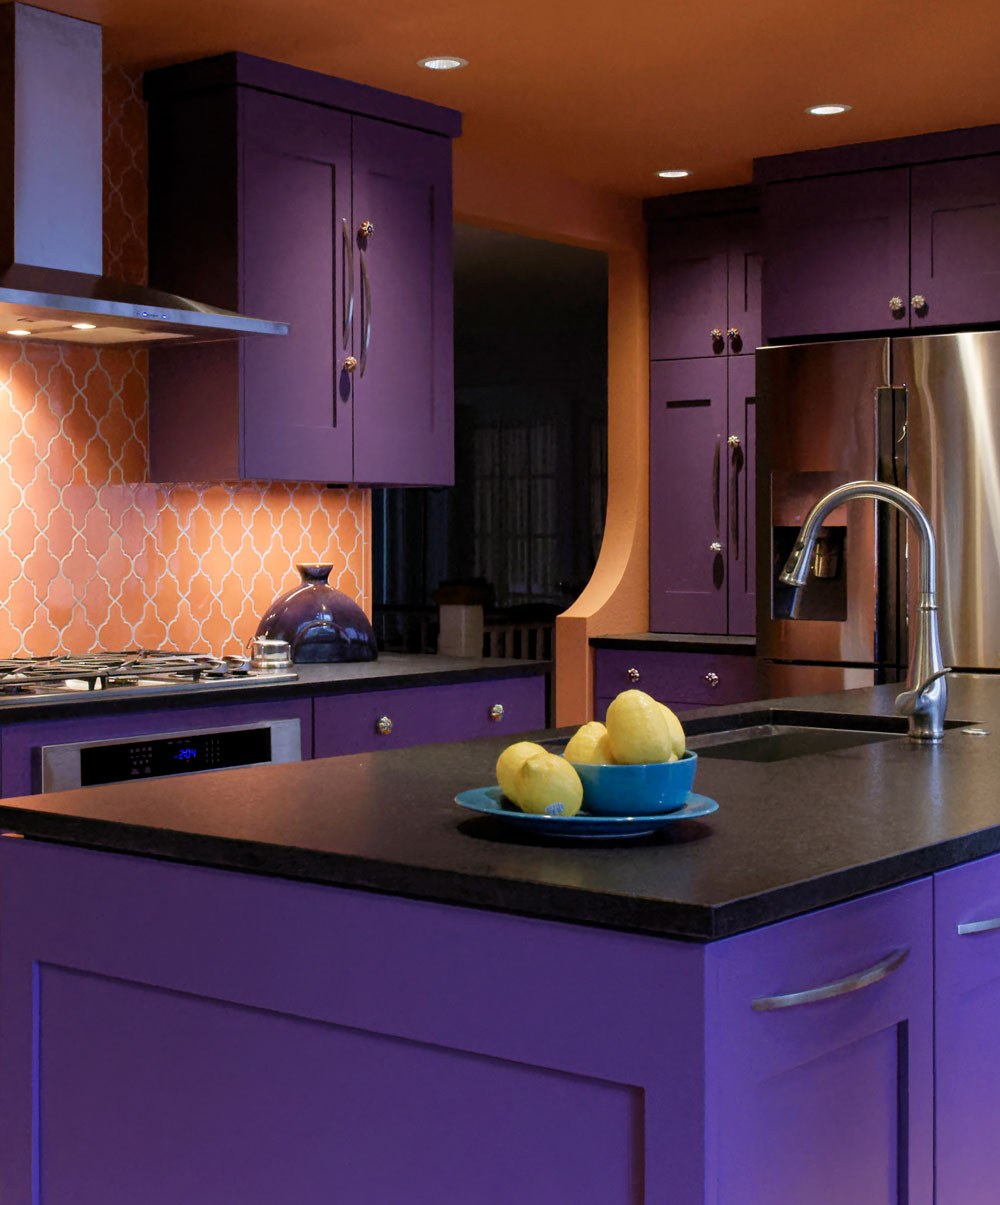 Kitchen Remodel Design with Purple Cabinets and Black Countertop